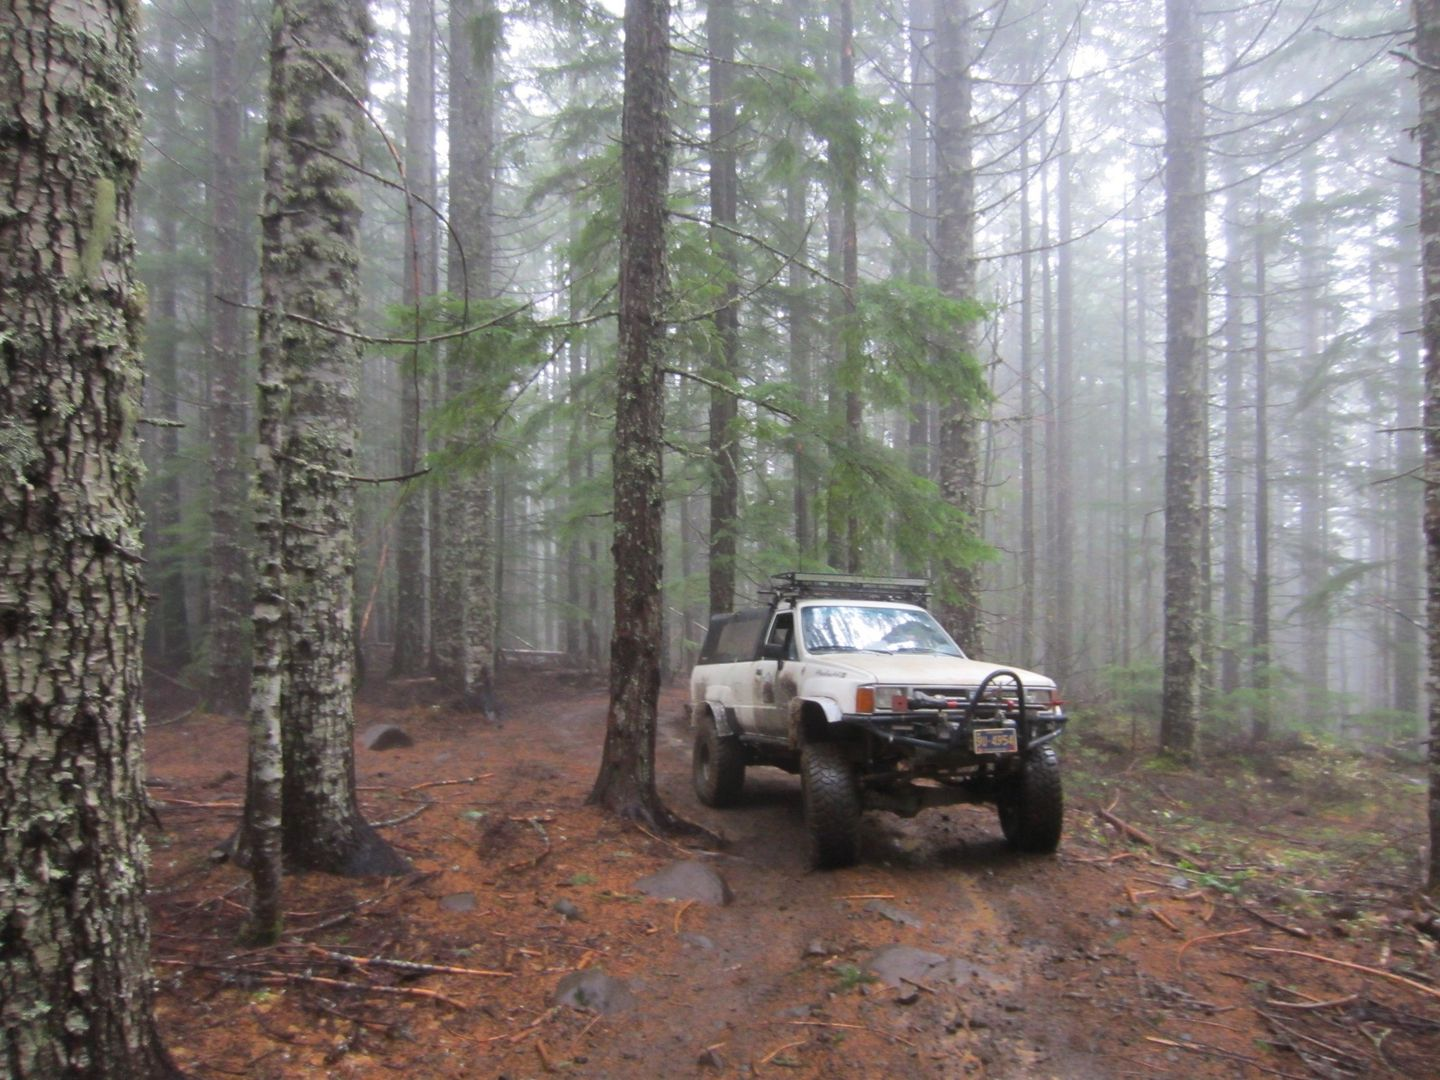 Firebreak Five / Tillamook State Forest - Waypoint 9: Cut Across to Other Path -- Continue Straight